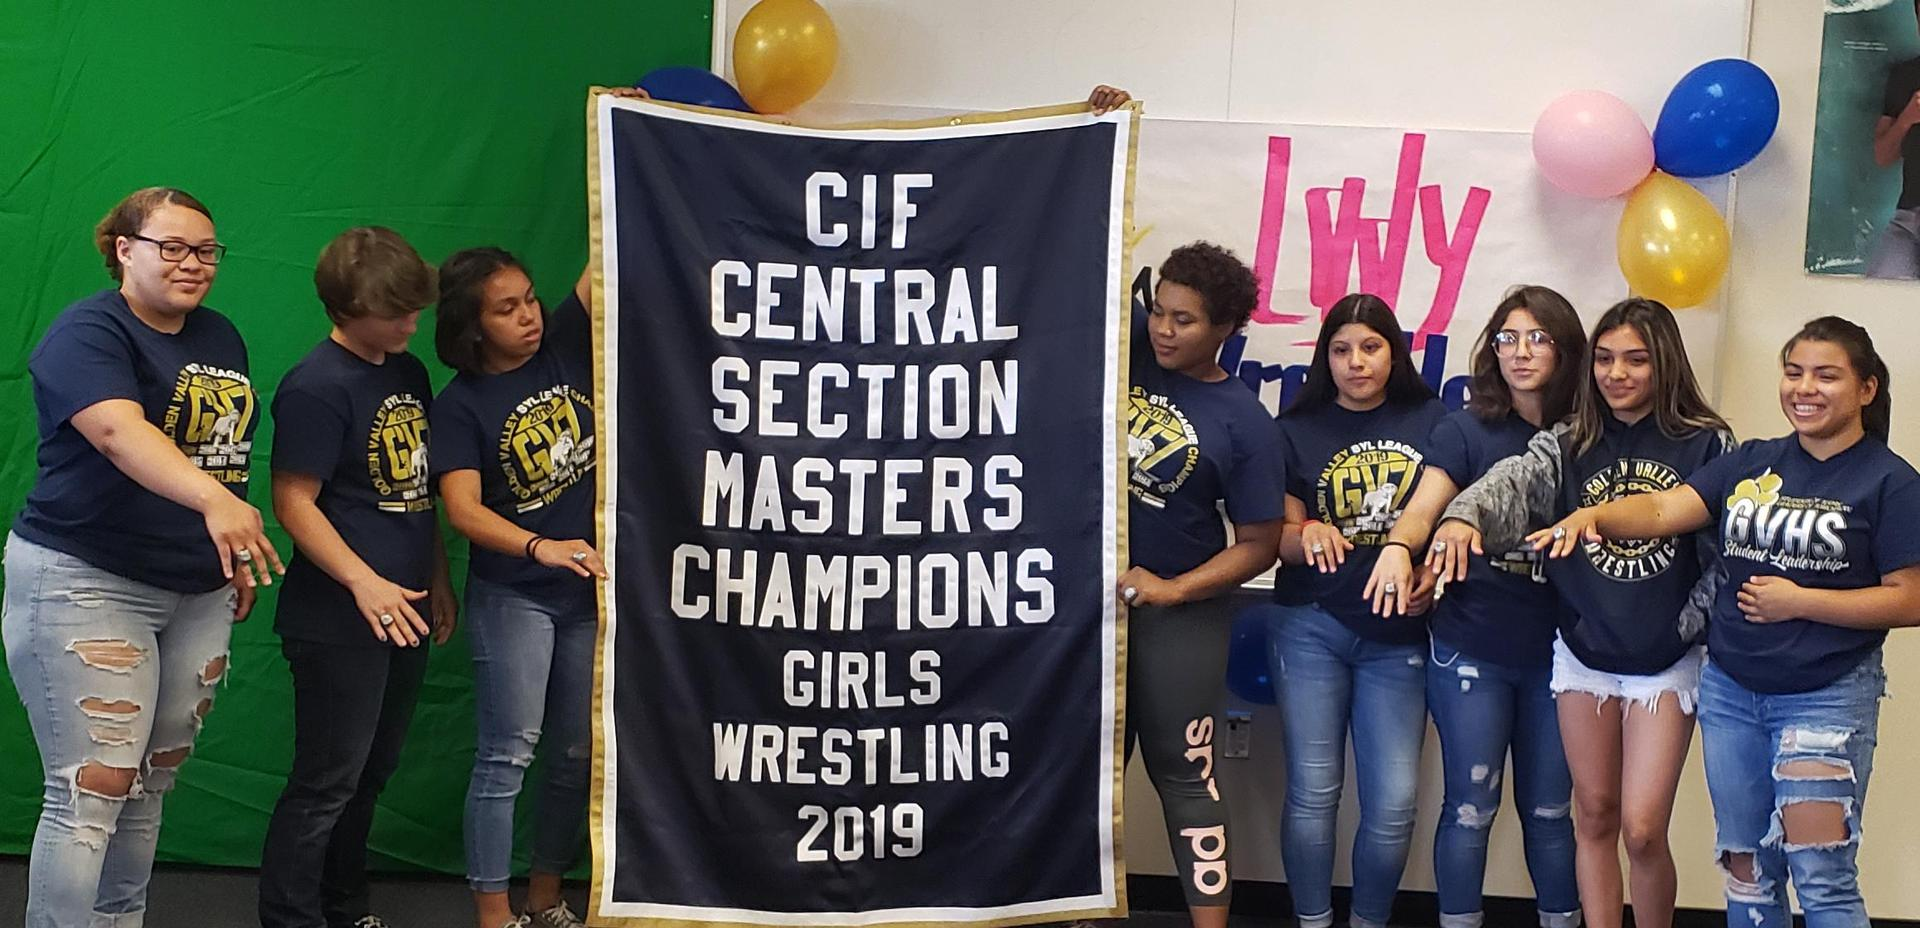 GV girls wrestlers showing the CIF Masters Championship banner